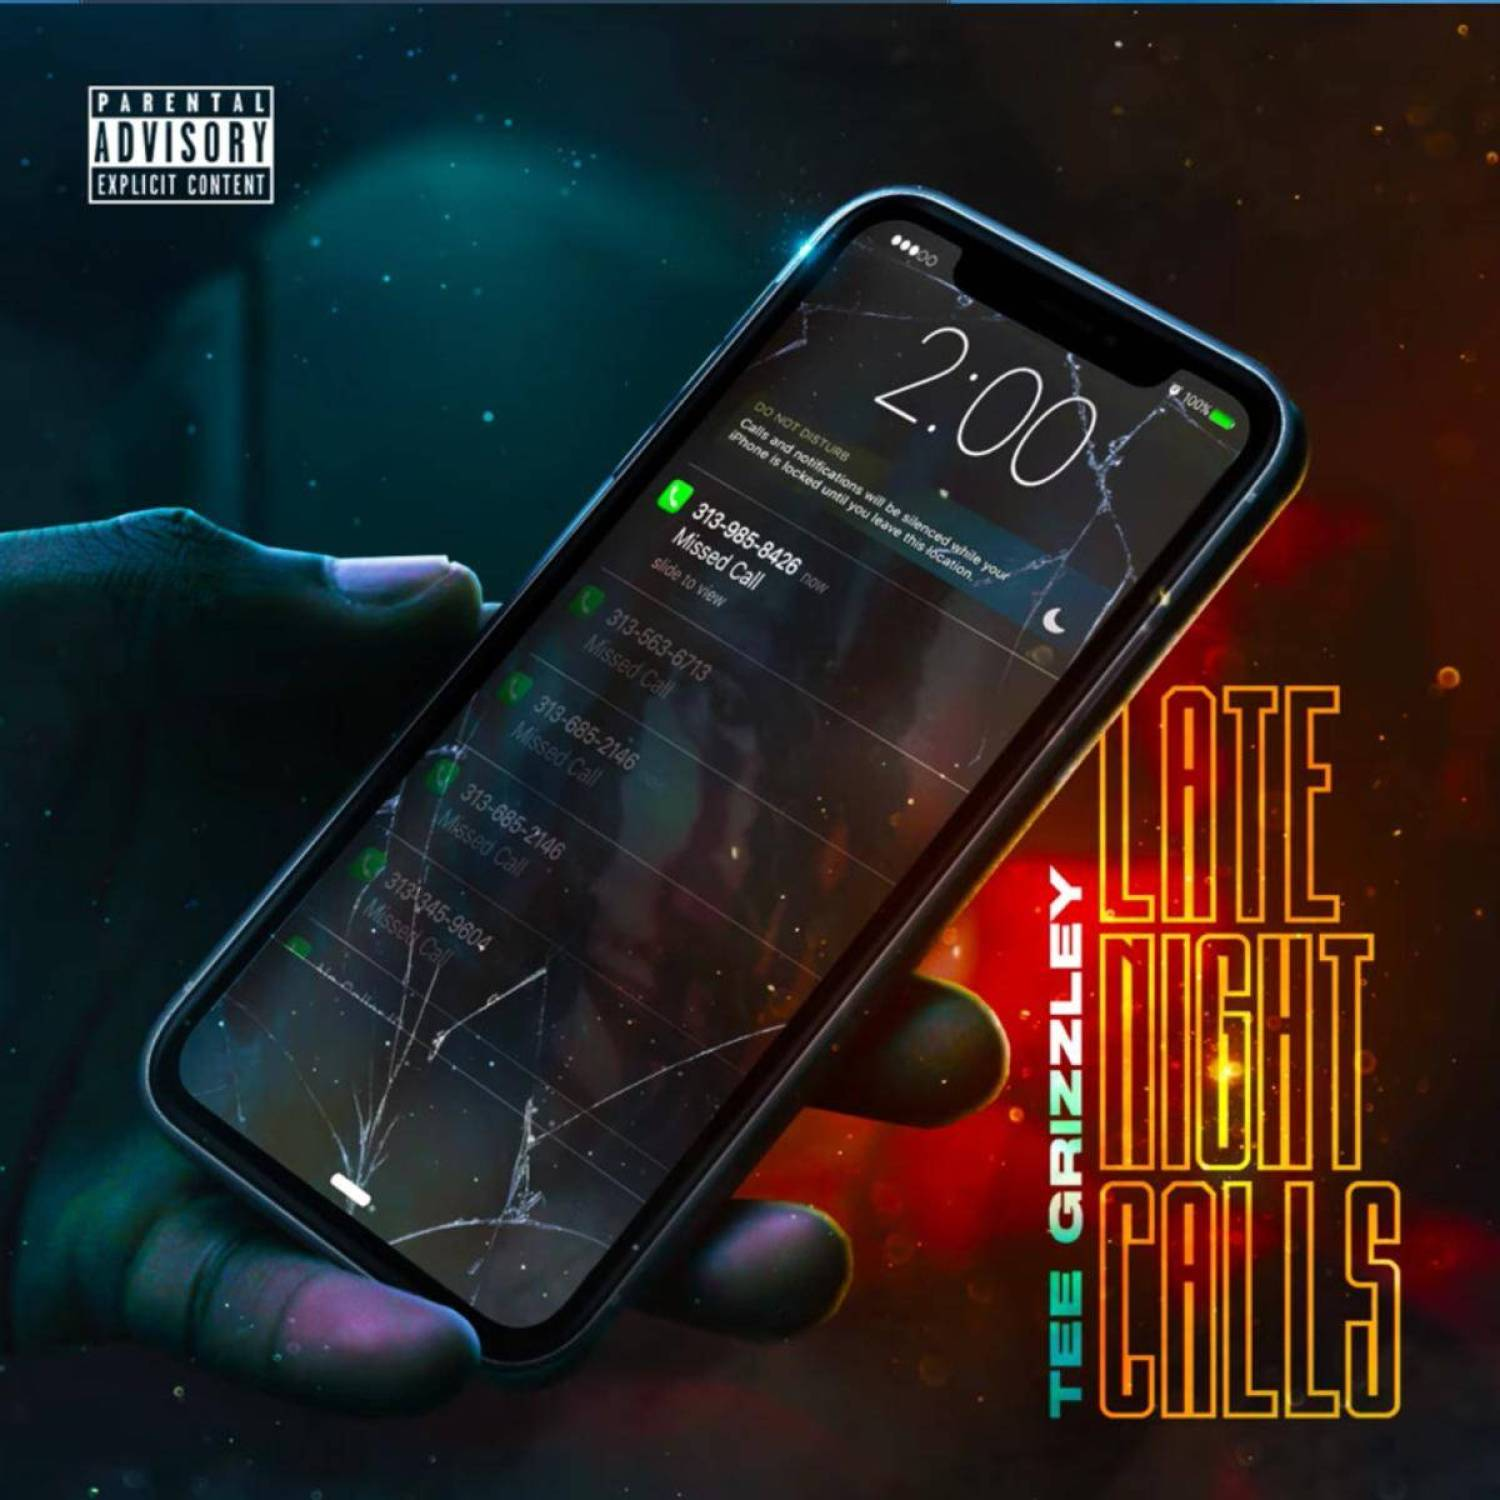 DOWNLOAD MP3: Tee Grizzley – Late Night Calls(Free MP3) AUDIO 320kbps